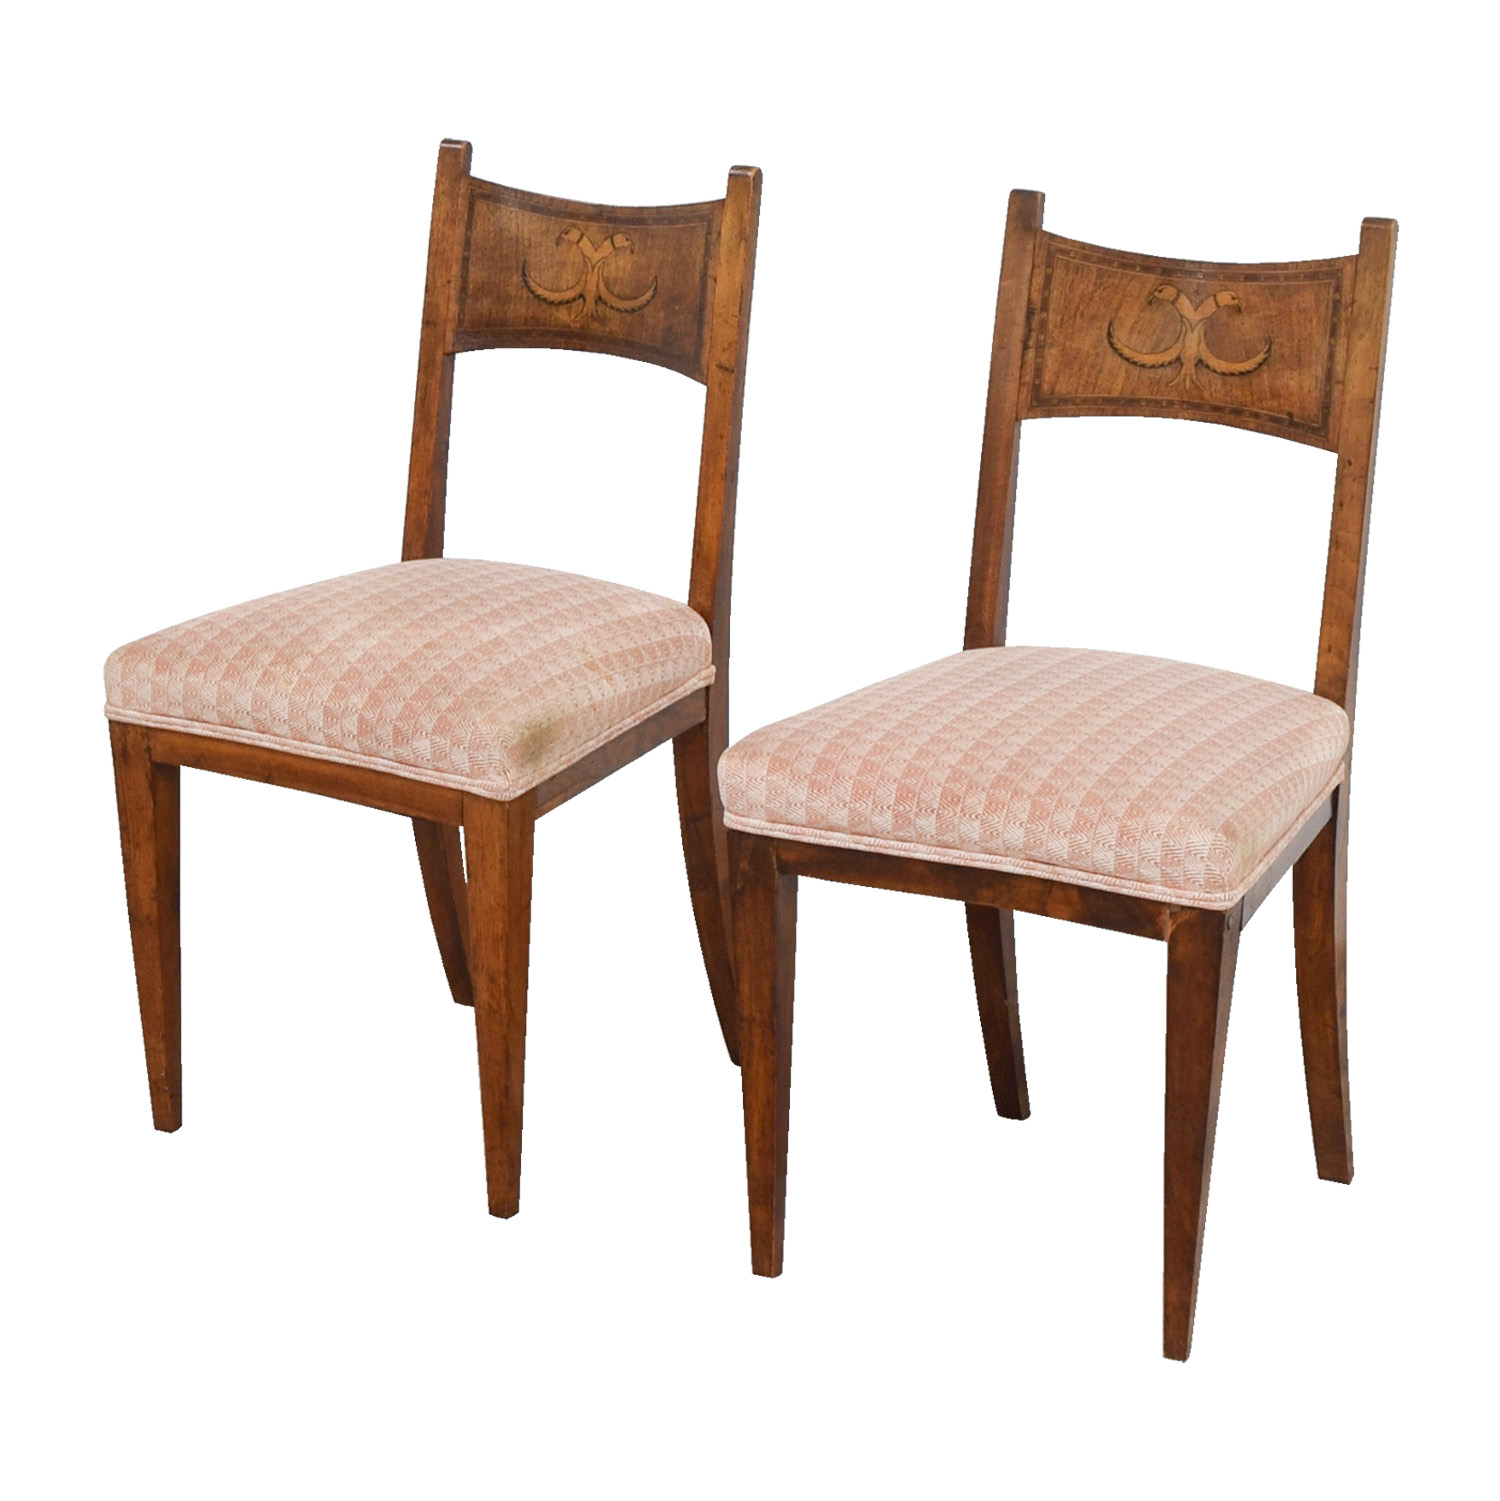 ... Buy Antique Pink Upholstered Chairs With Bird Wood Inlay ...